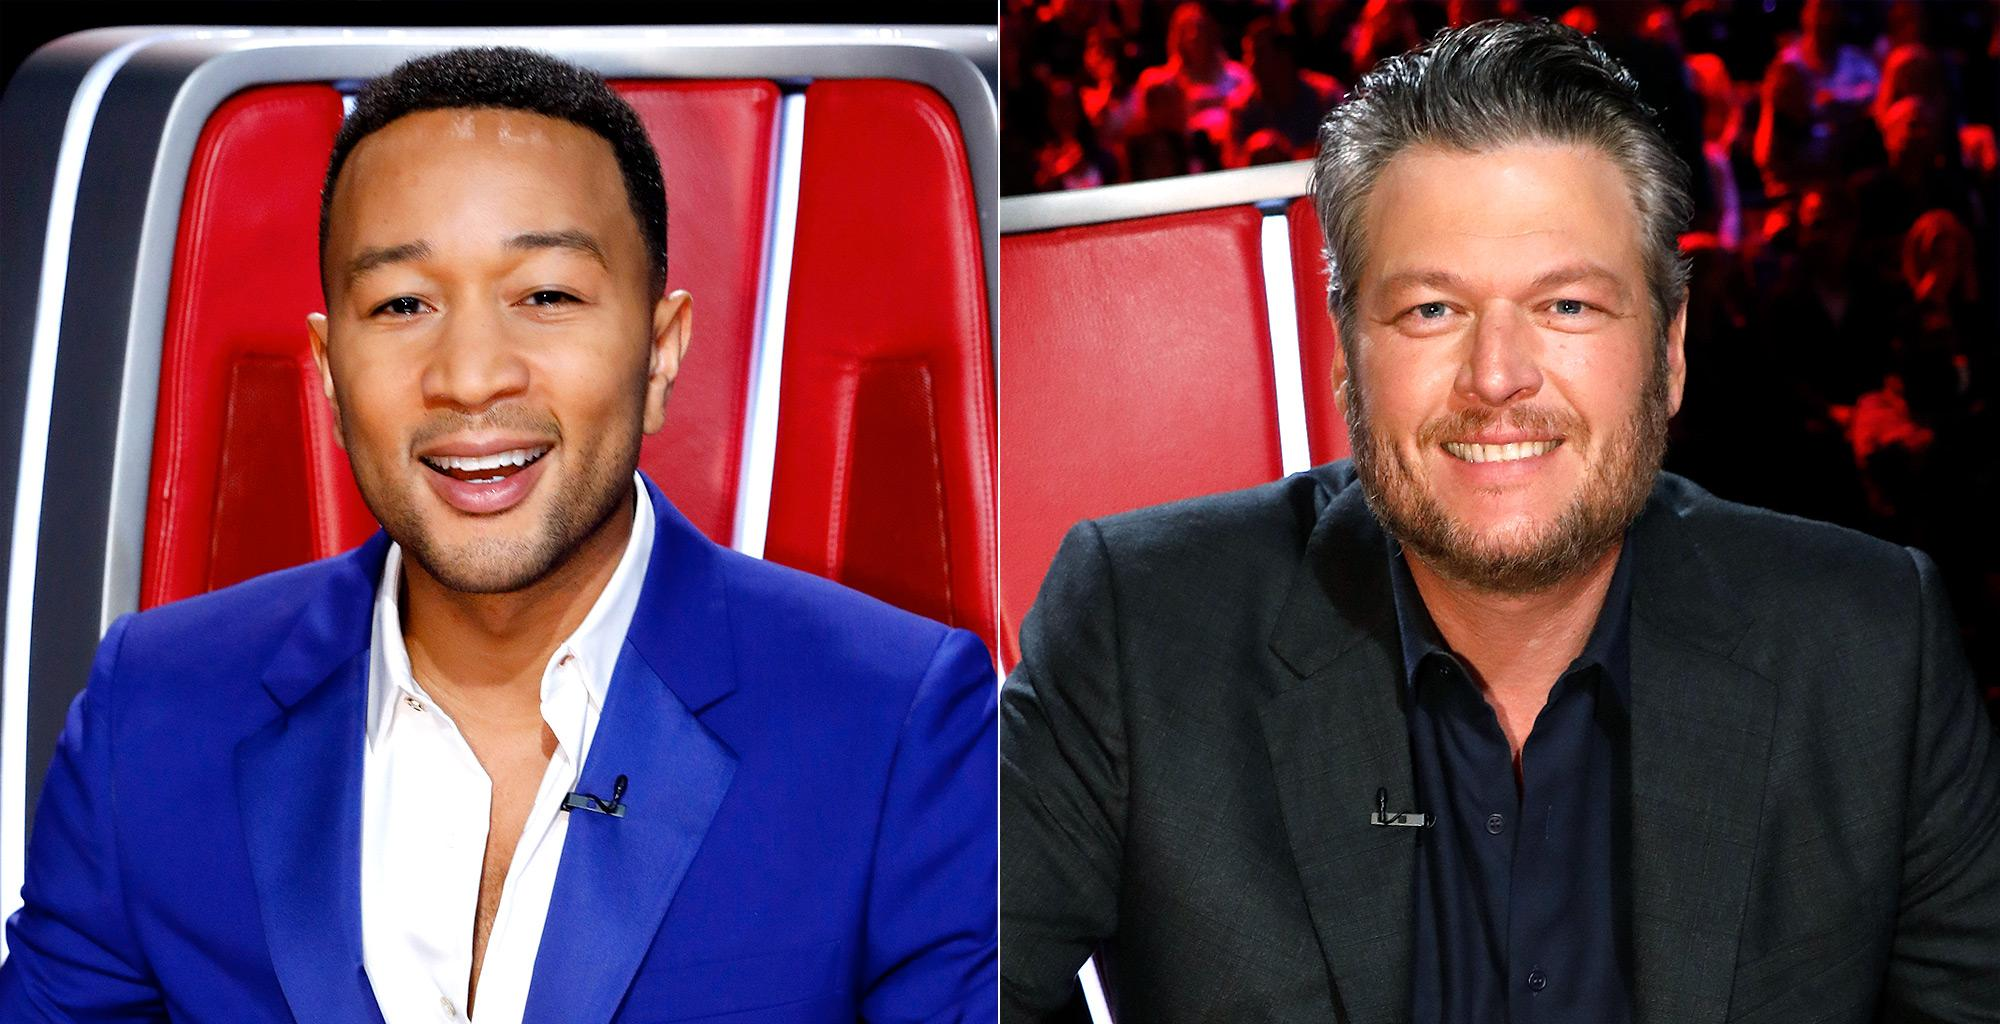 Blake Shelton And John Legend Can't Wait To Have Fun Teasing Each Other On The Voice, Source Says - Details!